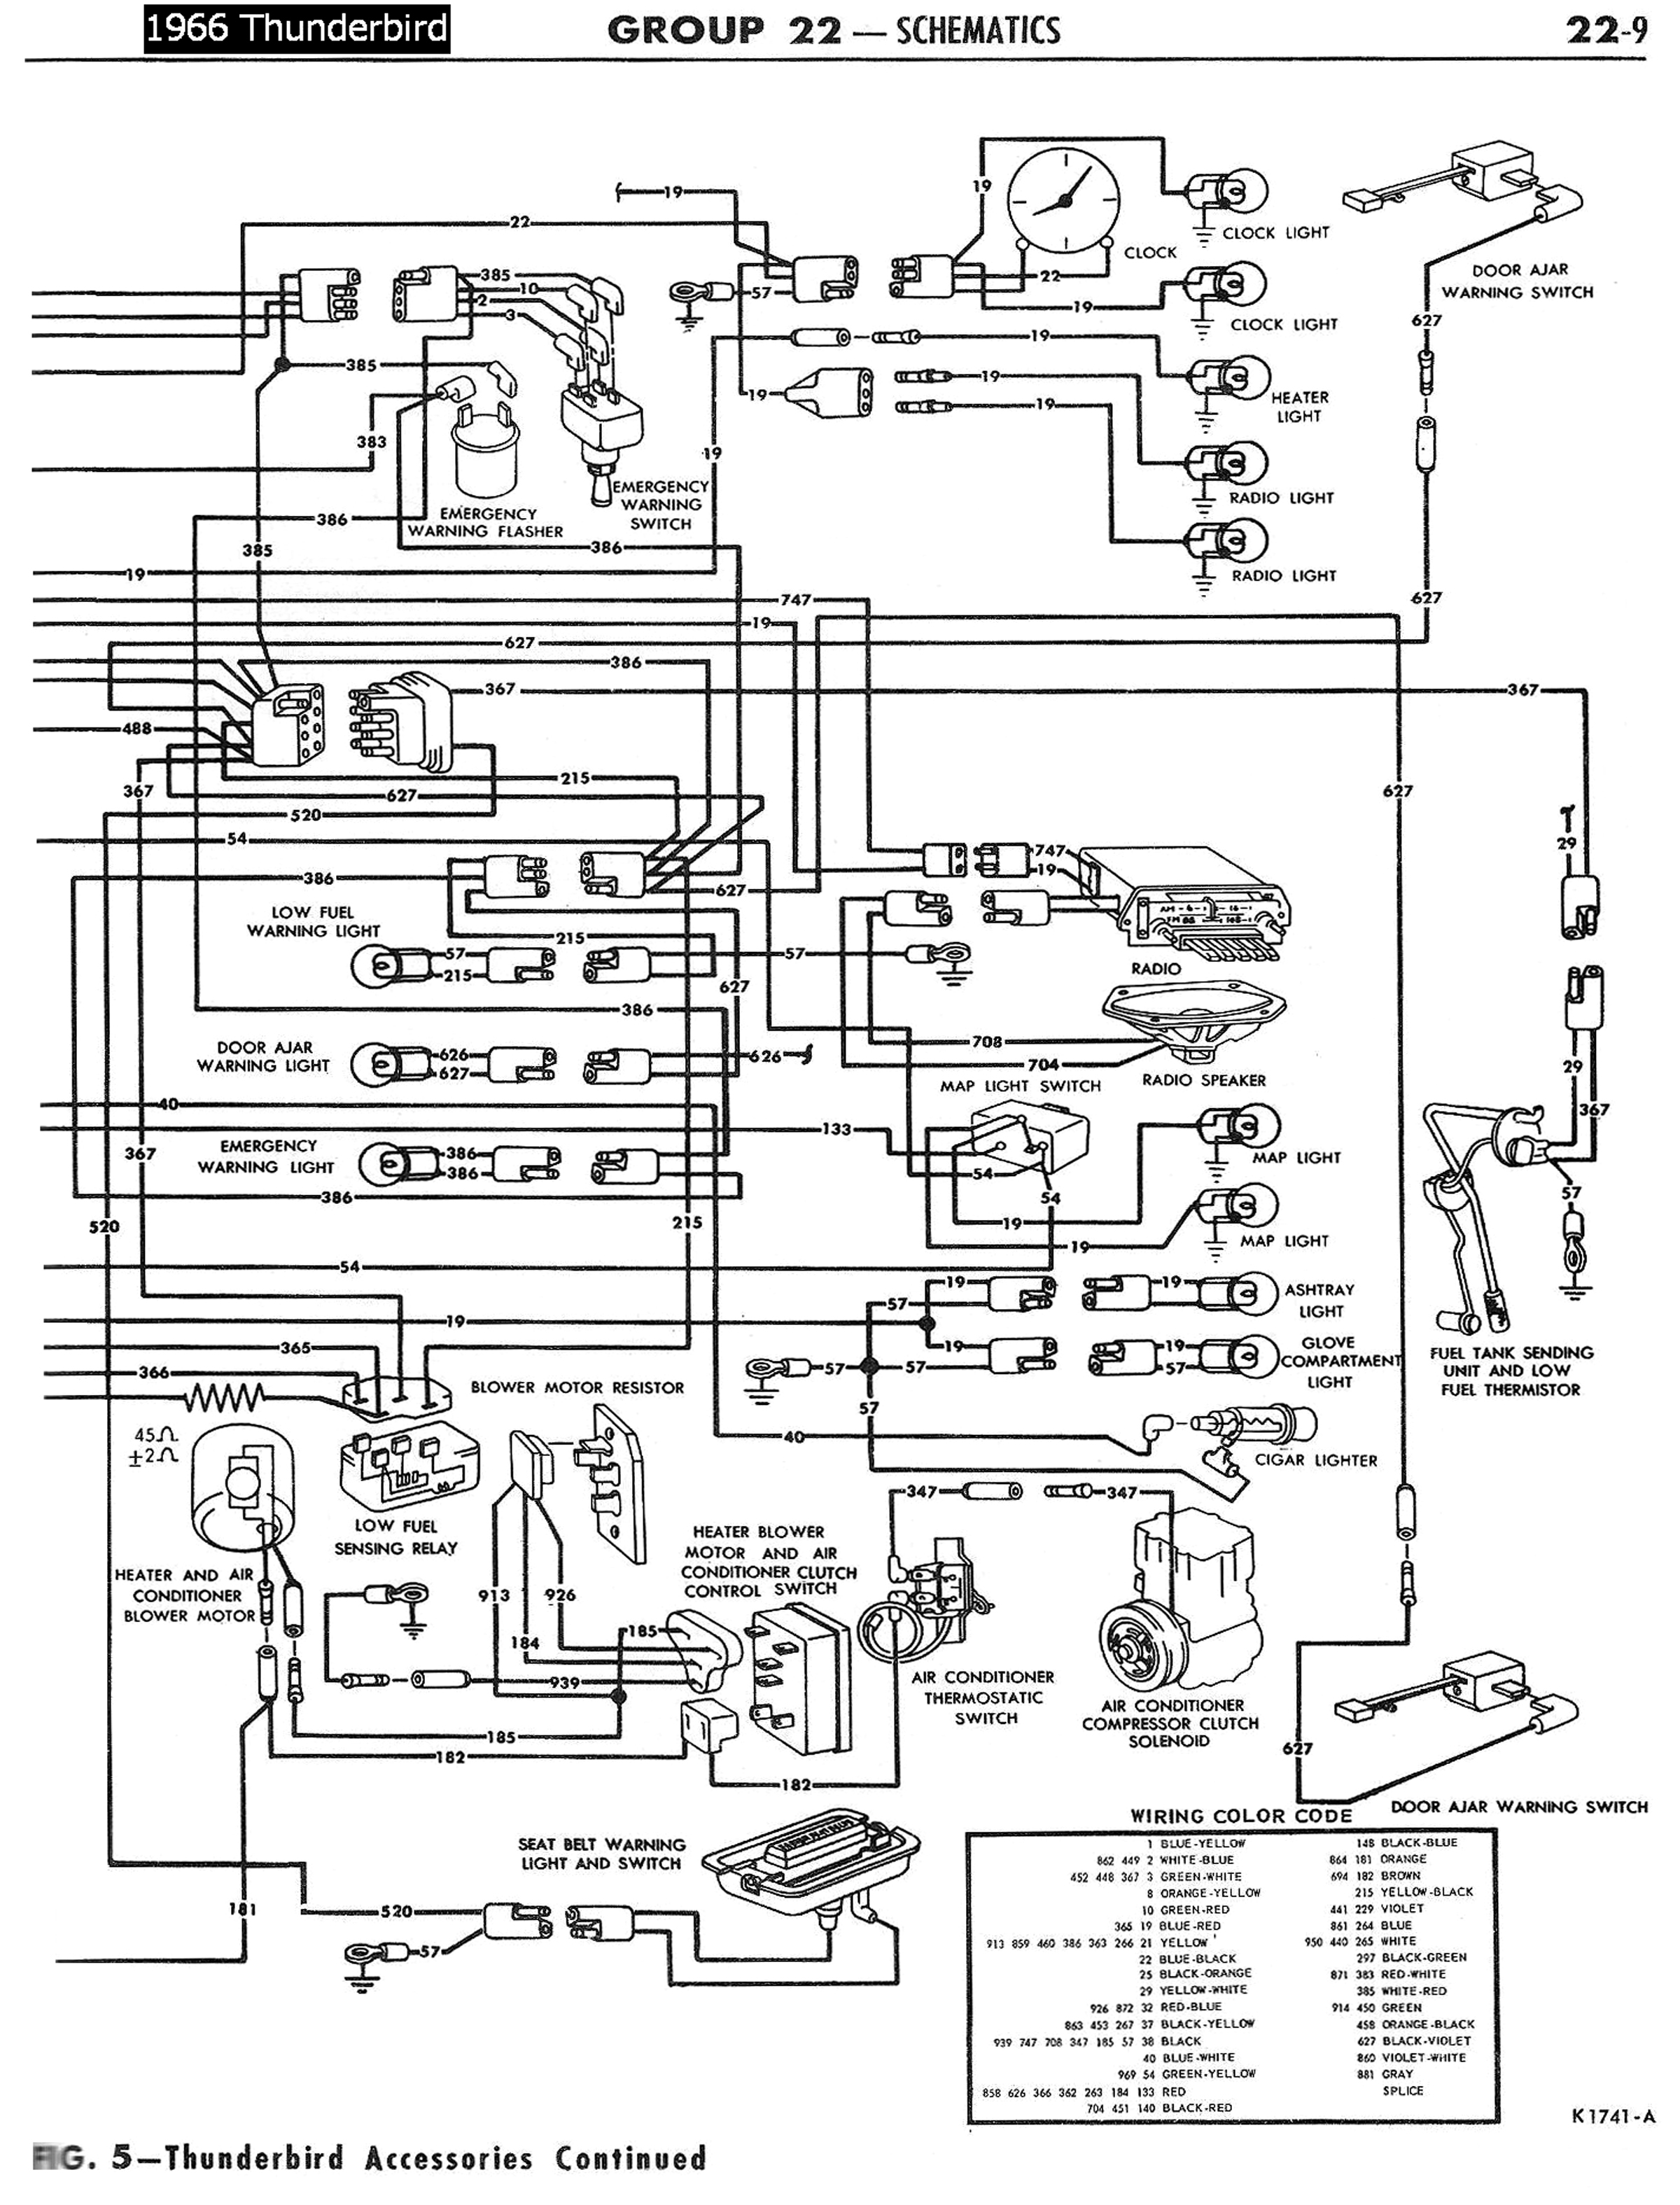 1966 corvette turn signal wiring diagram nightingale rose 1958 68 ford electrical schematics 25